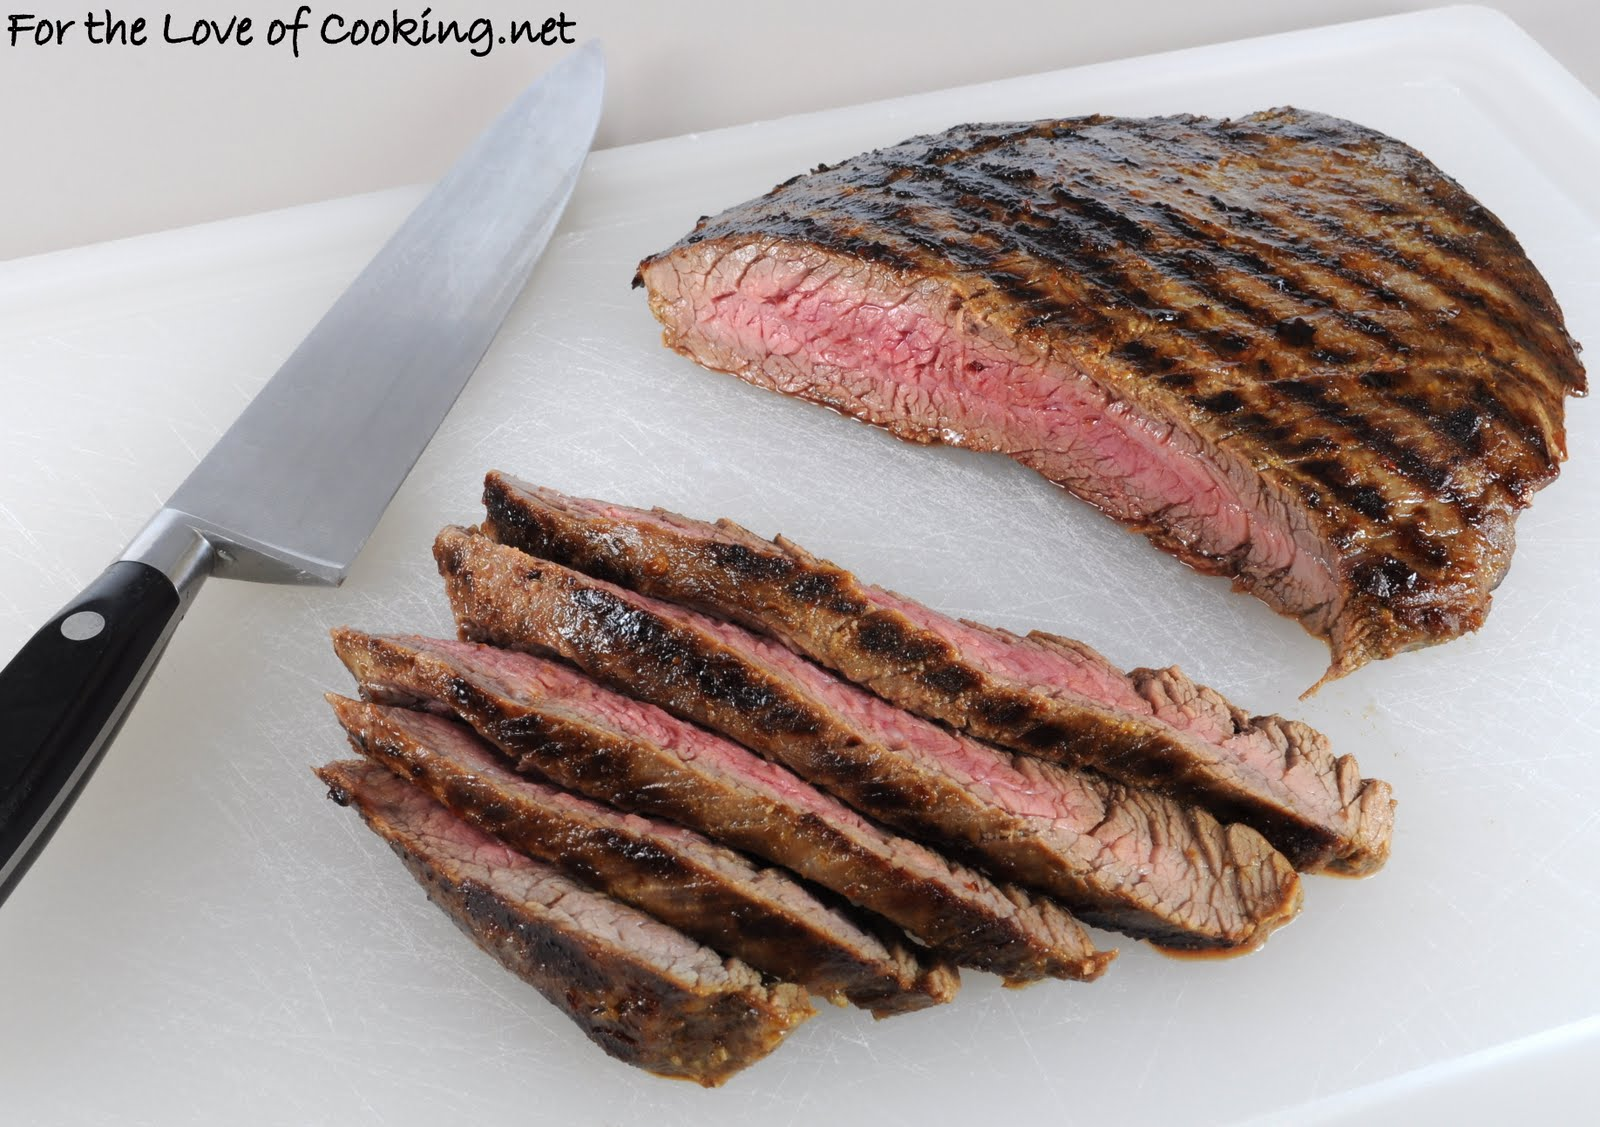 Soy Garlic Flank Steak | For the Love of Cooking